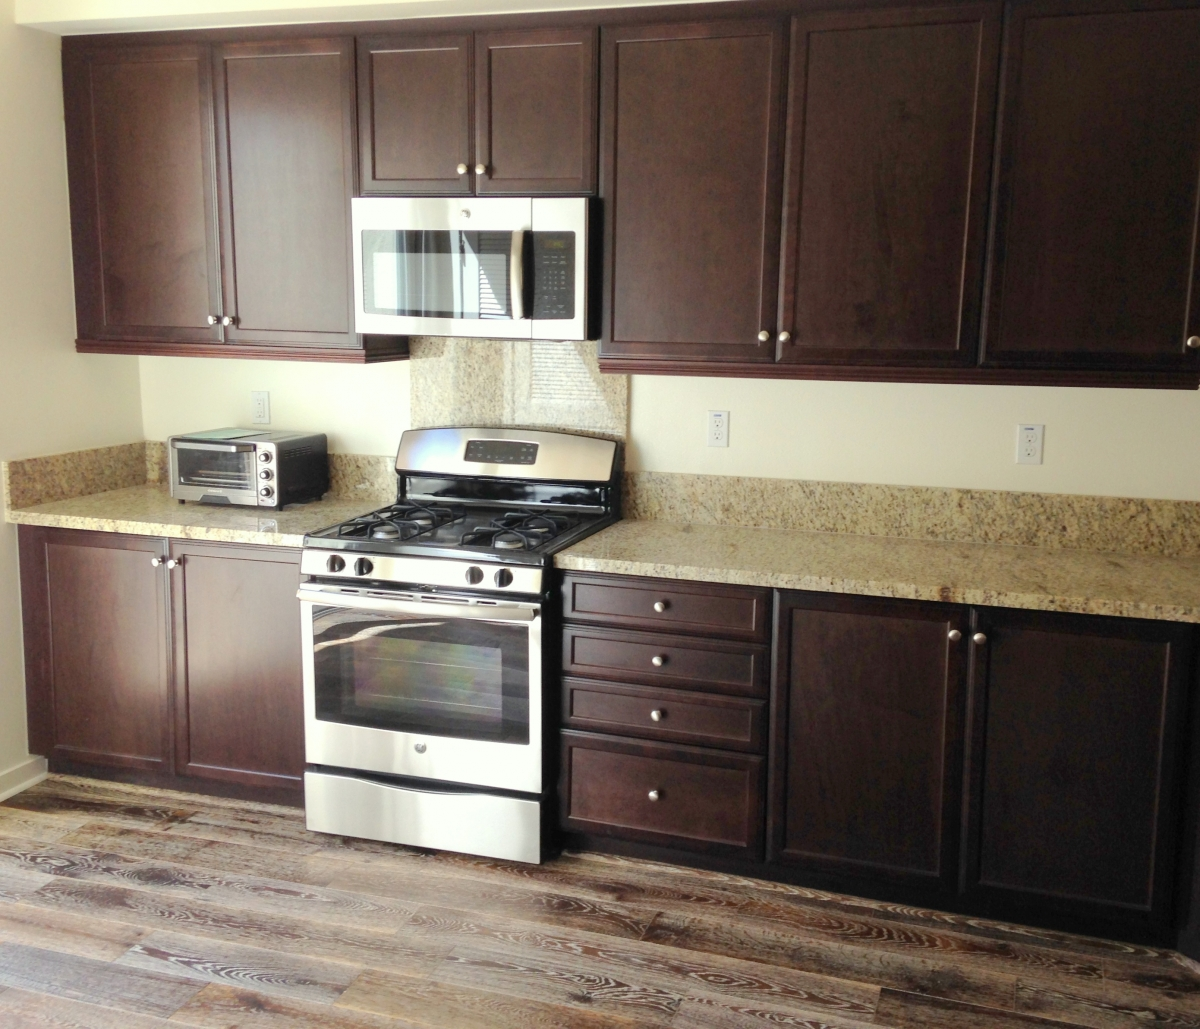 Residential Remodeling Services: Home Remodeling Contractor